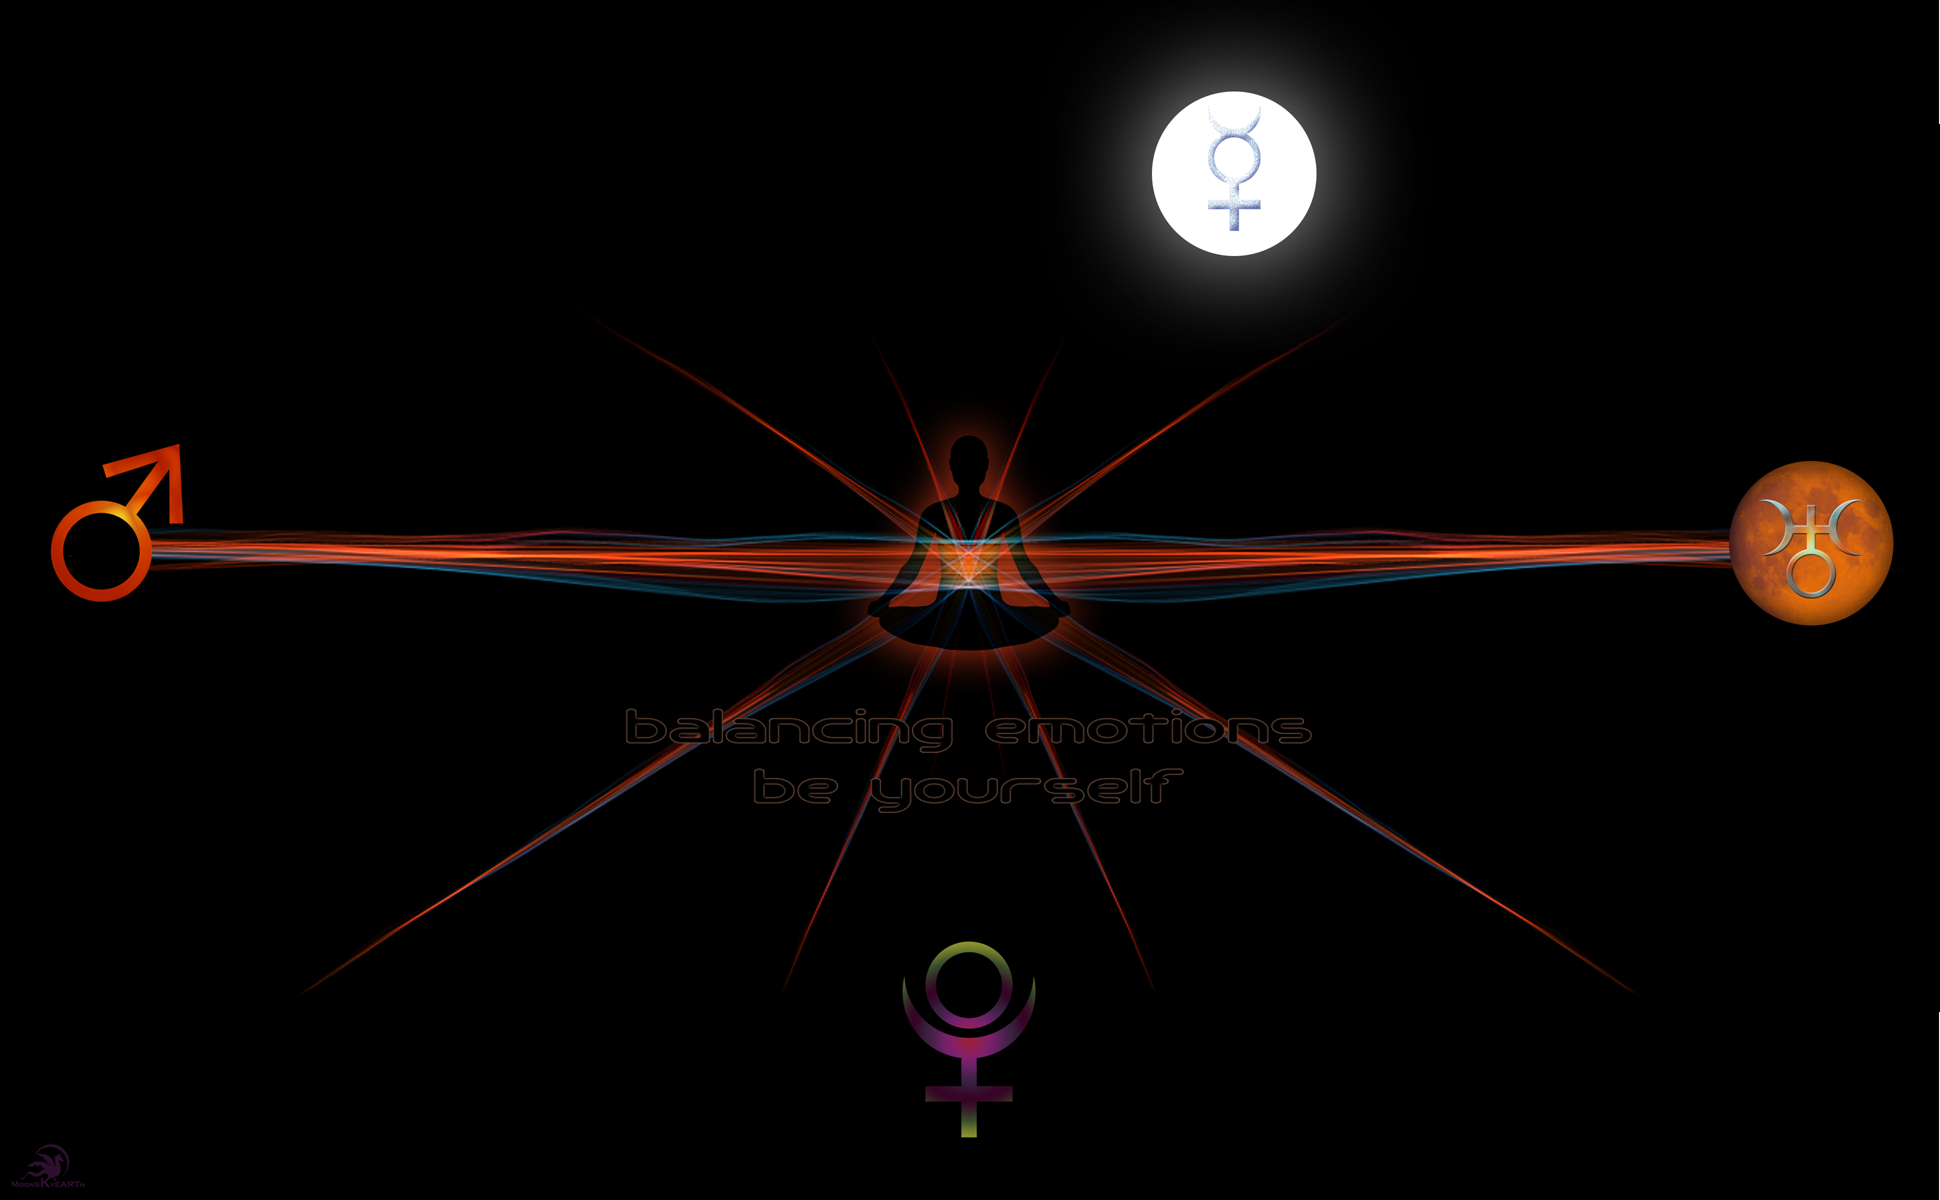 June 20 Sun Mercury… #Pluto square Mars / Moon Uranus